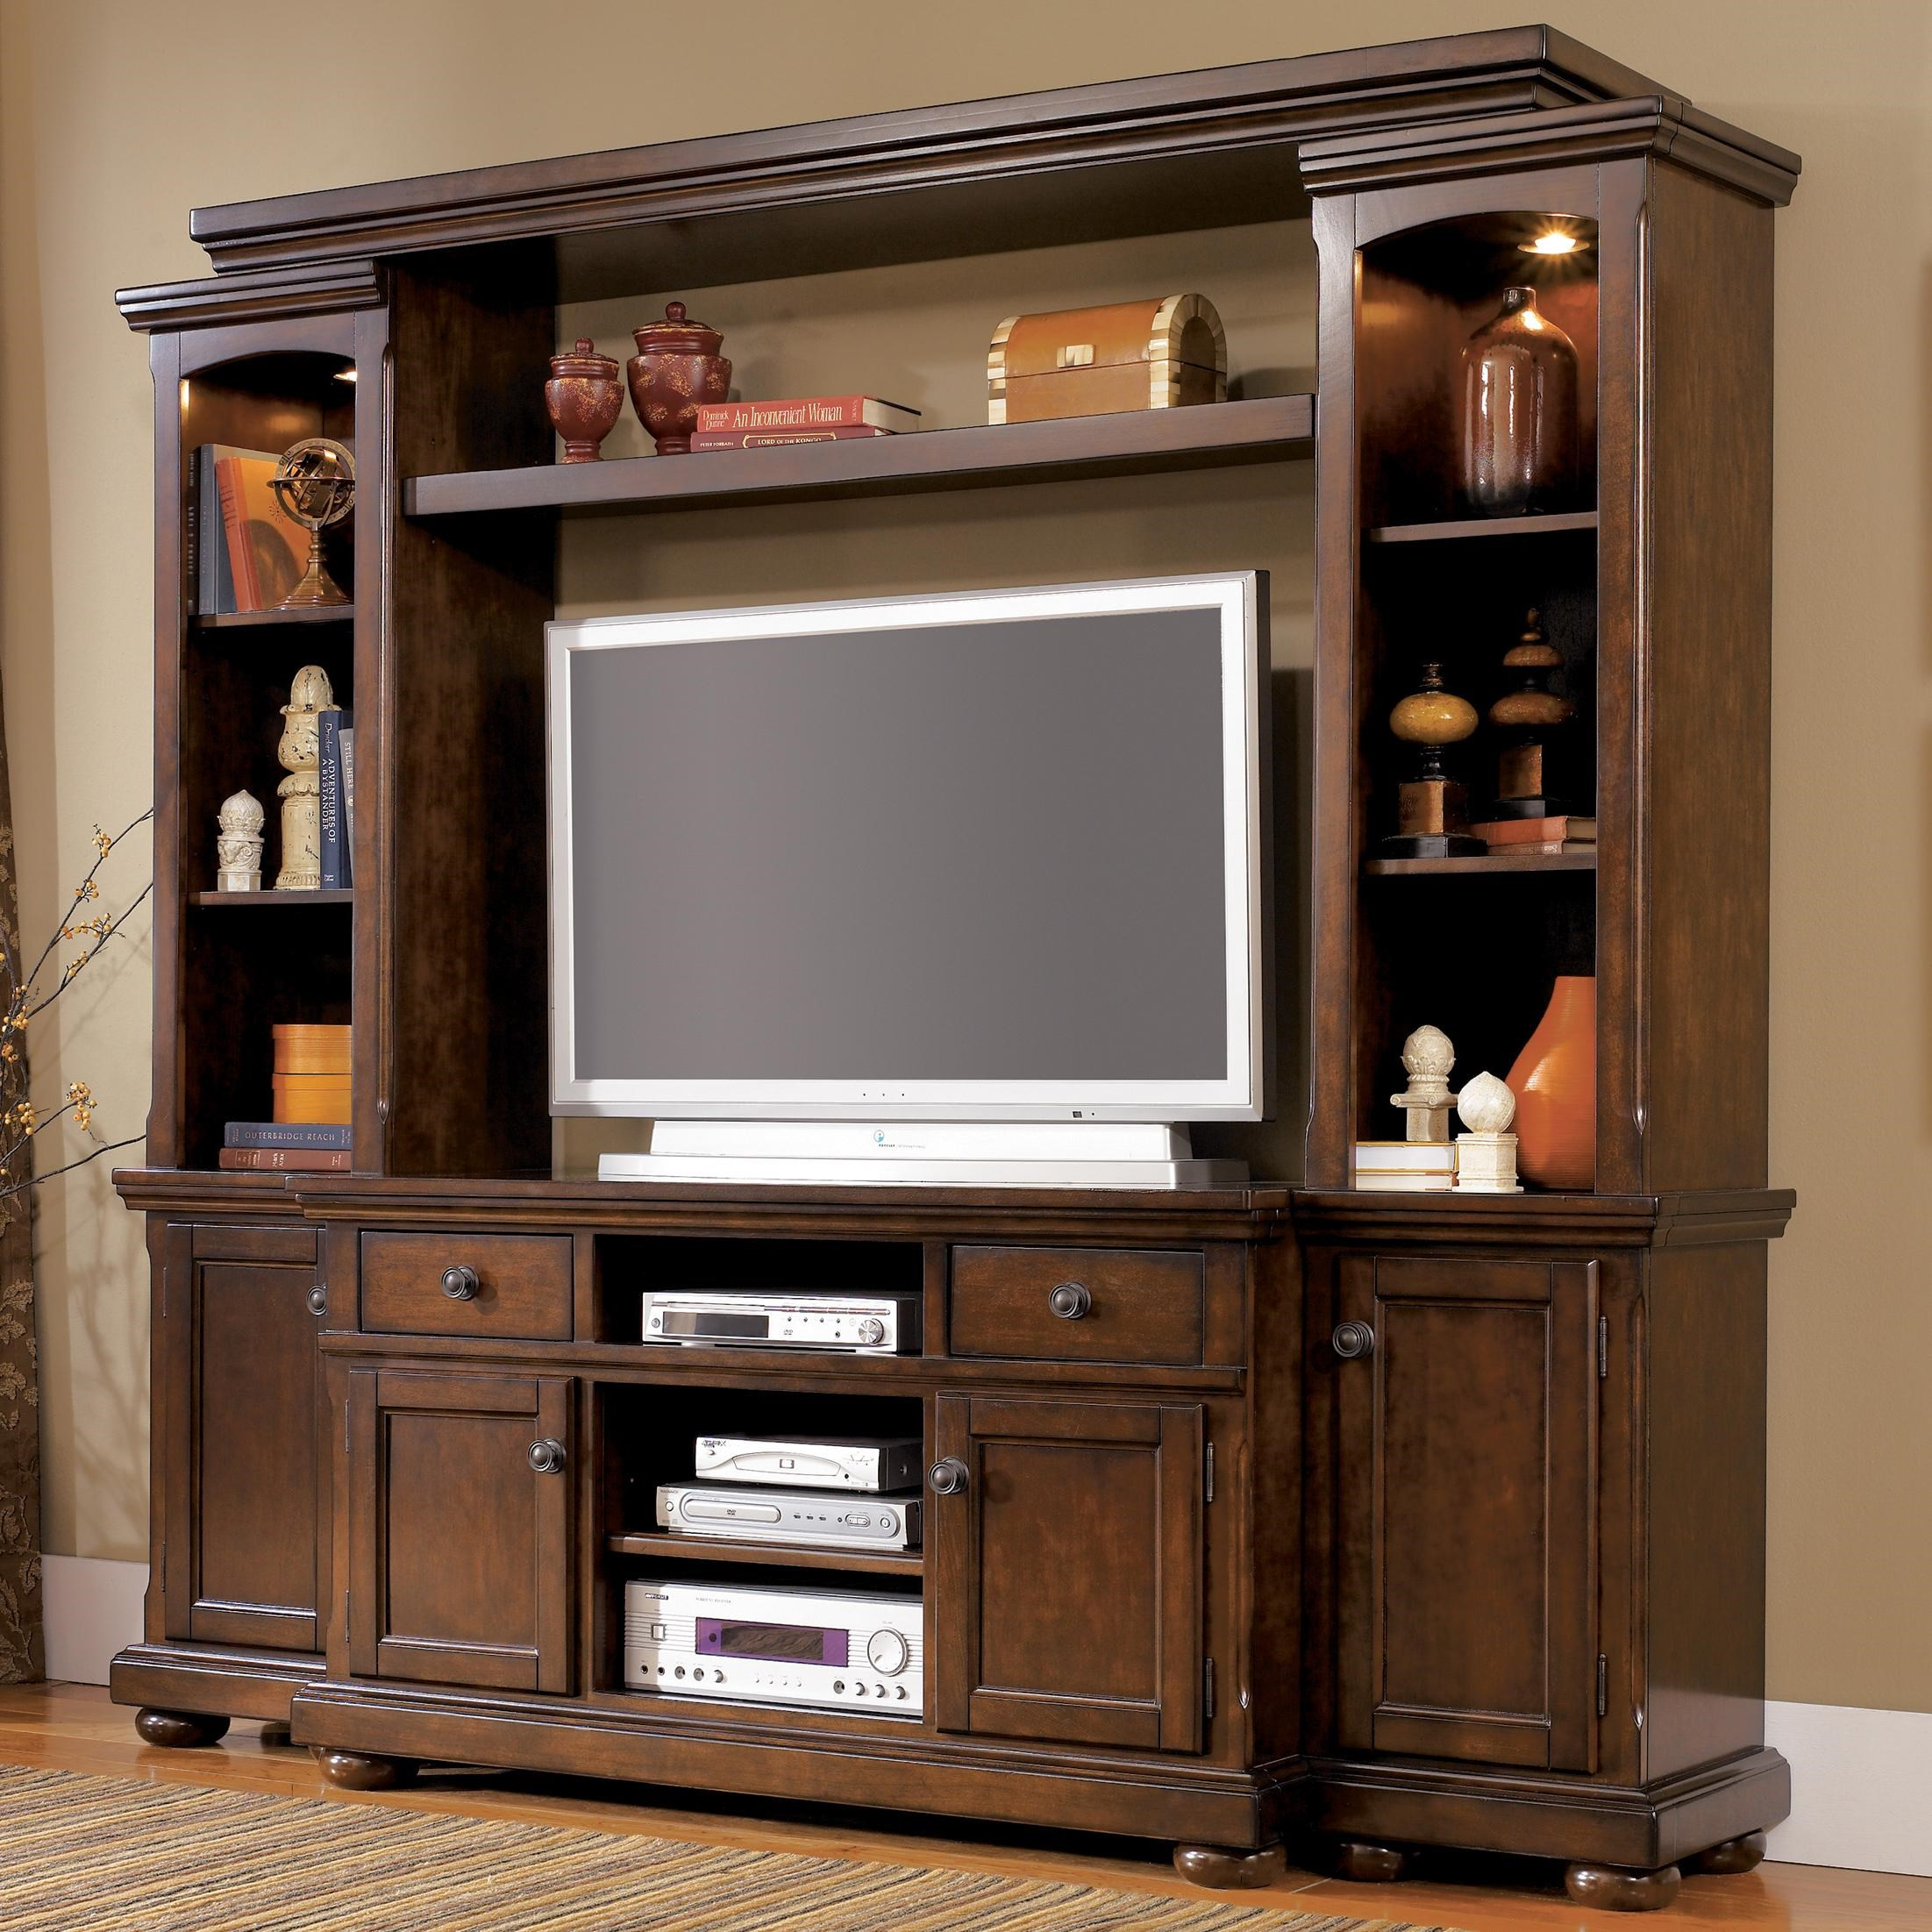 Nice Porter House W697 23+25+20+24 Entertainment Wall Unit With TV Stand, Piers,  Bridge, And Shelf By Ashley Furniture